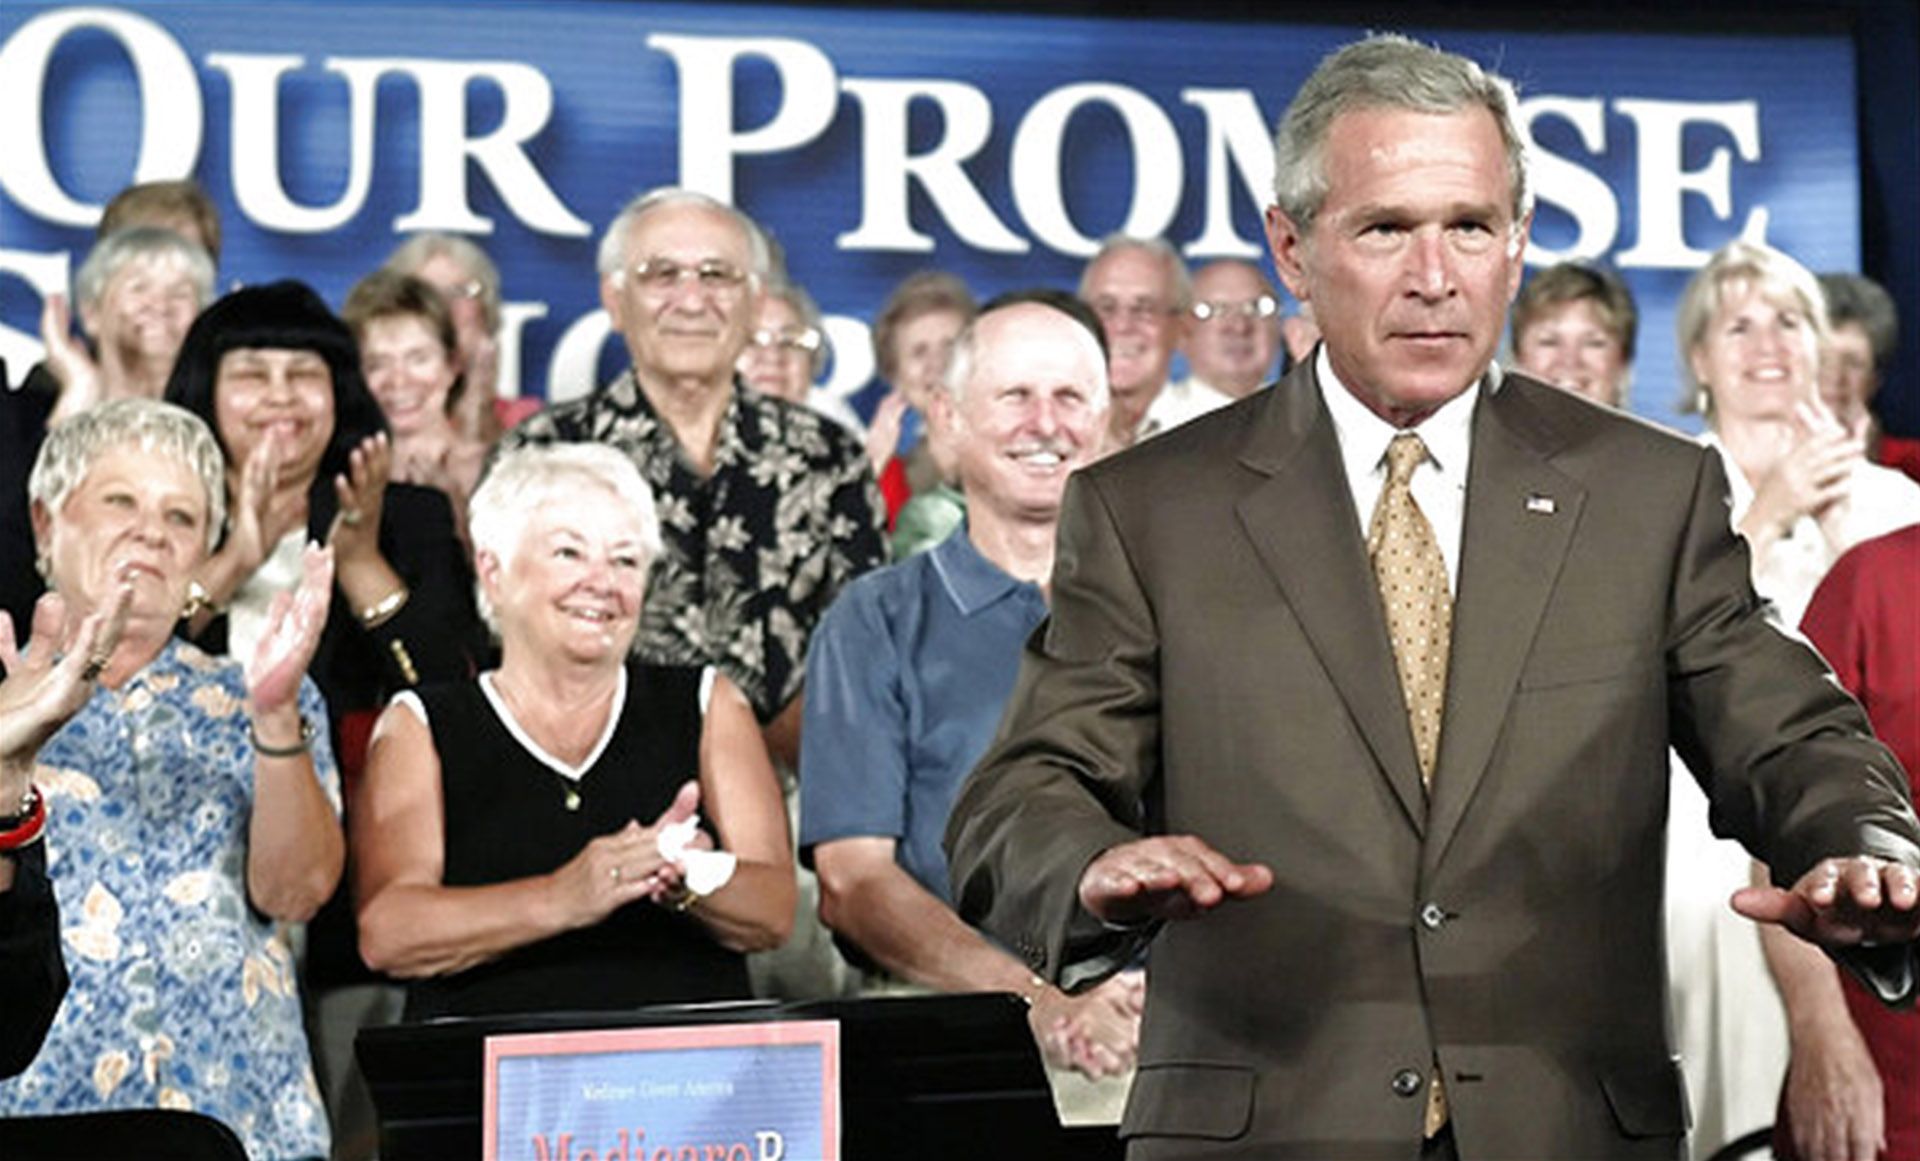 U.S. President George W. Bush tries to quieten down the crowd before the start of a town hall-style meeting at a retirement community in El Mirage, Arizona, August 29, 2005. Bush talked about Medicare prescription-drug benefits with the senior citizens. REUTERS/Jeff Mitchell